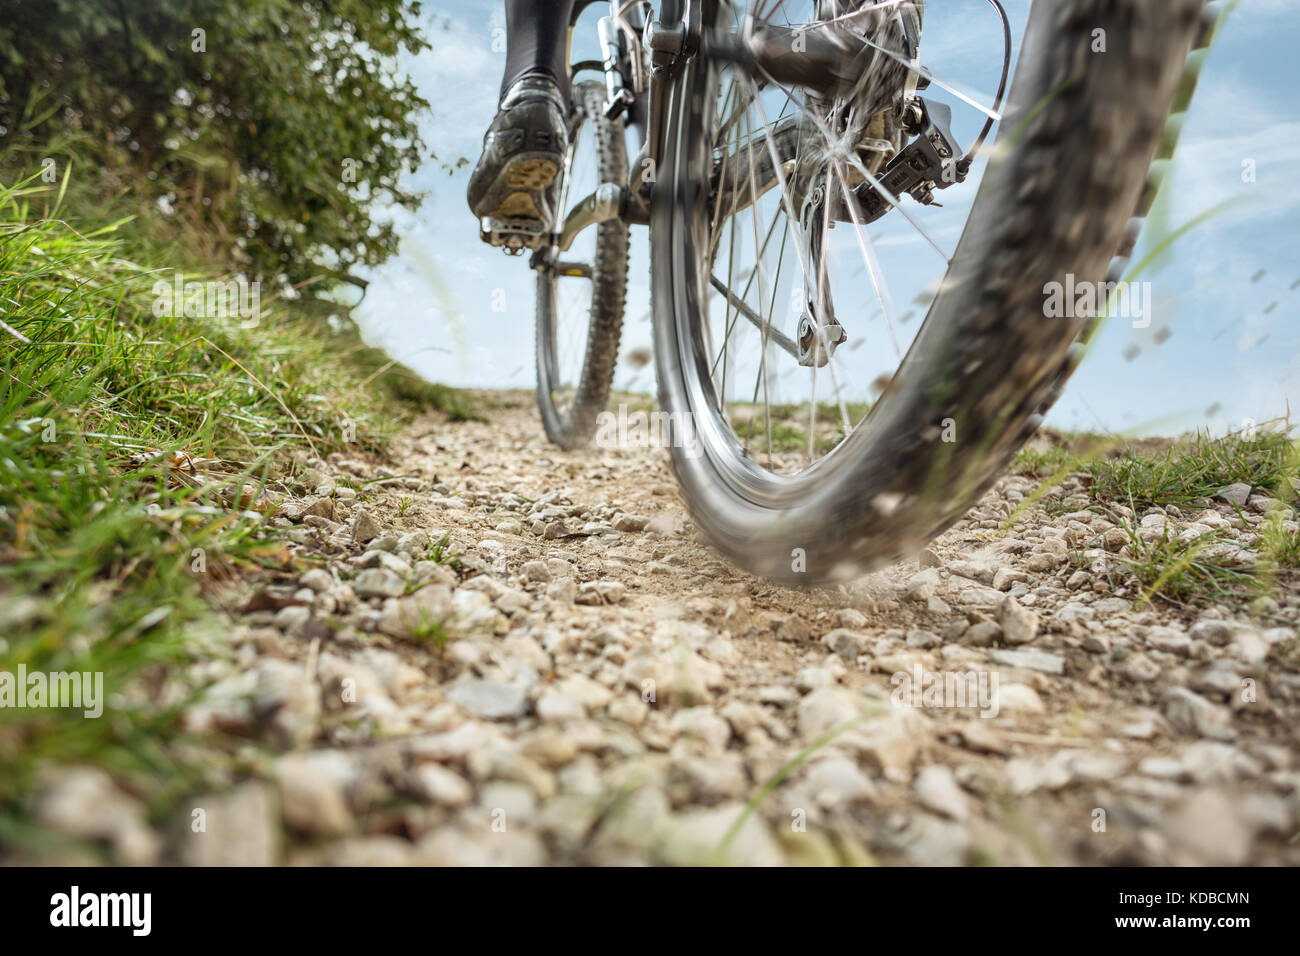 Mountain Bike on a dirt road - Stock Image